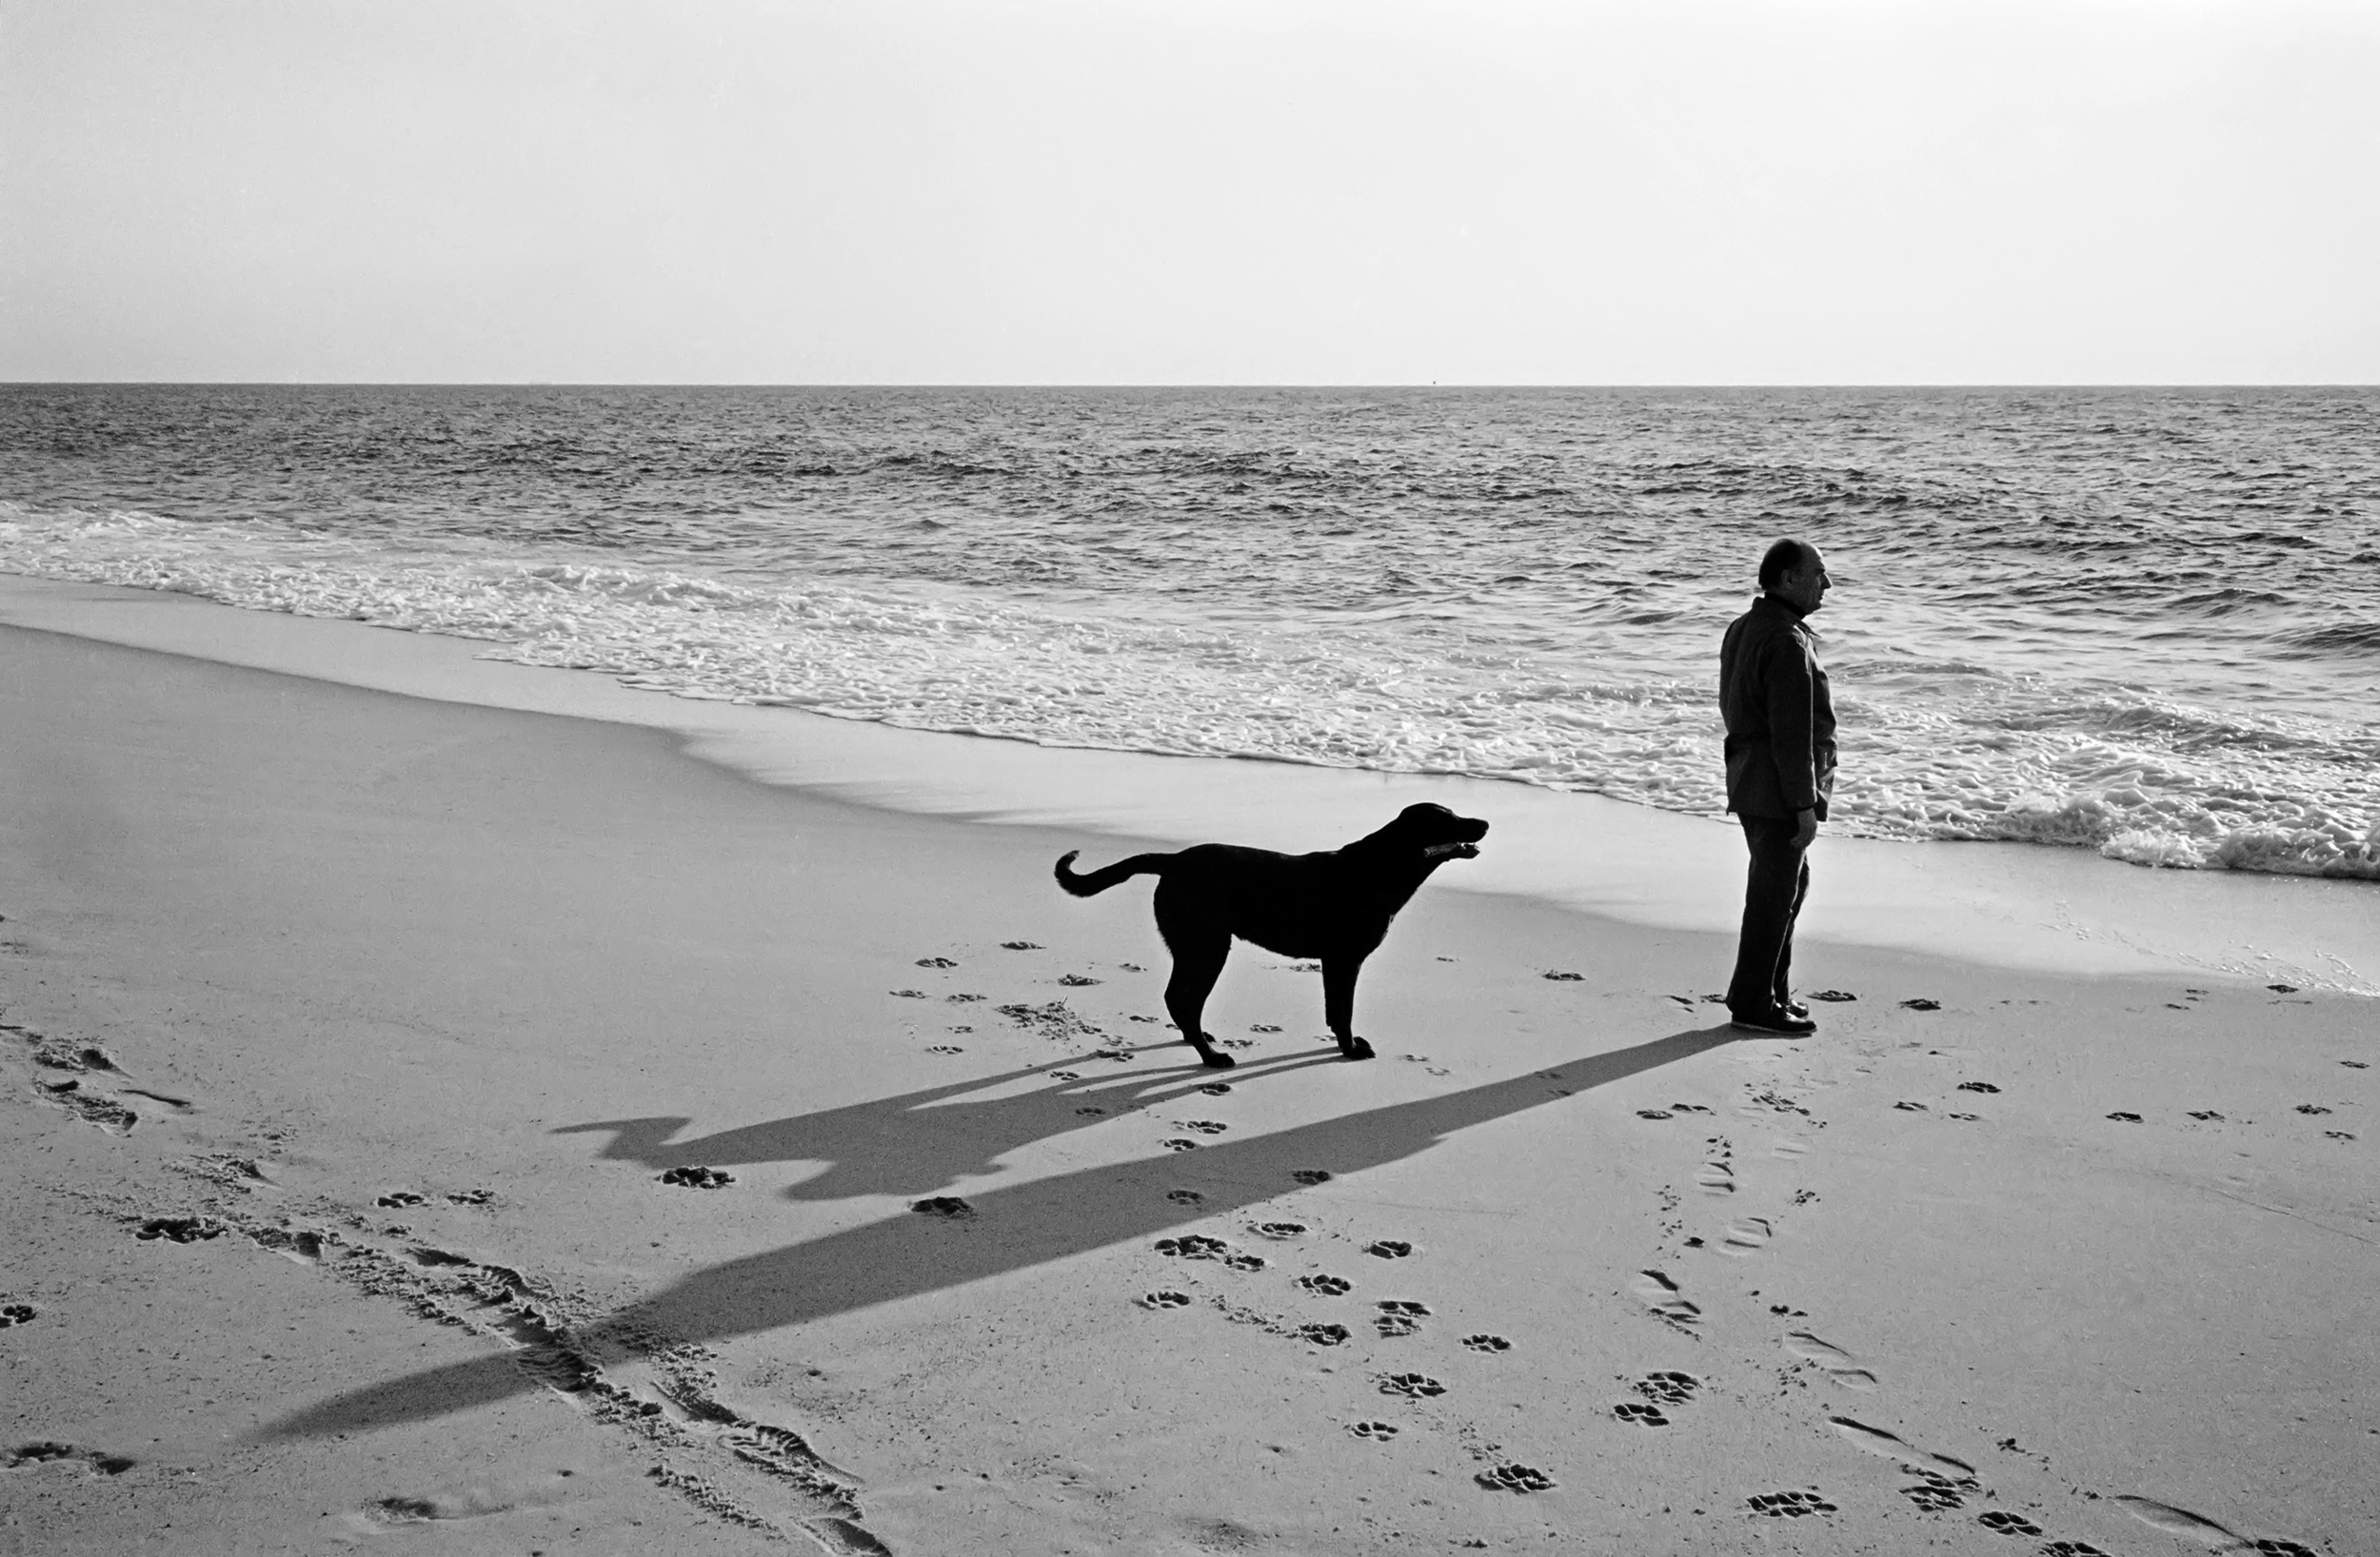 With his dog Nils at Soustons, France